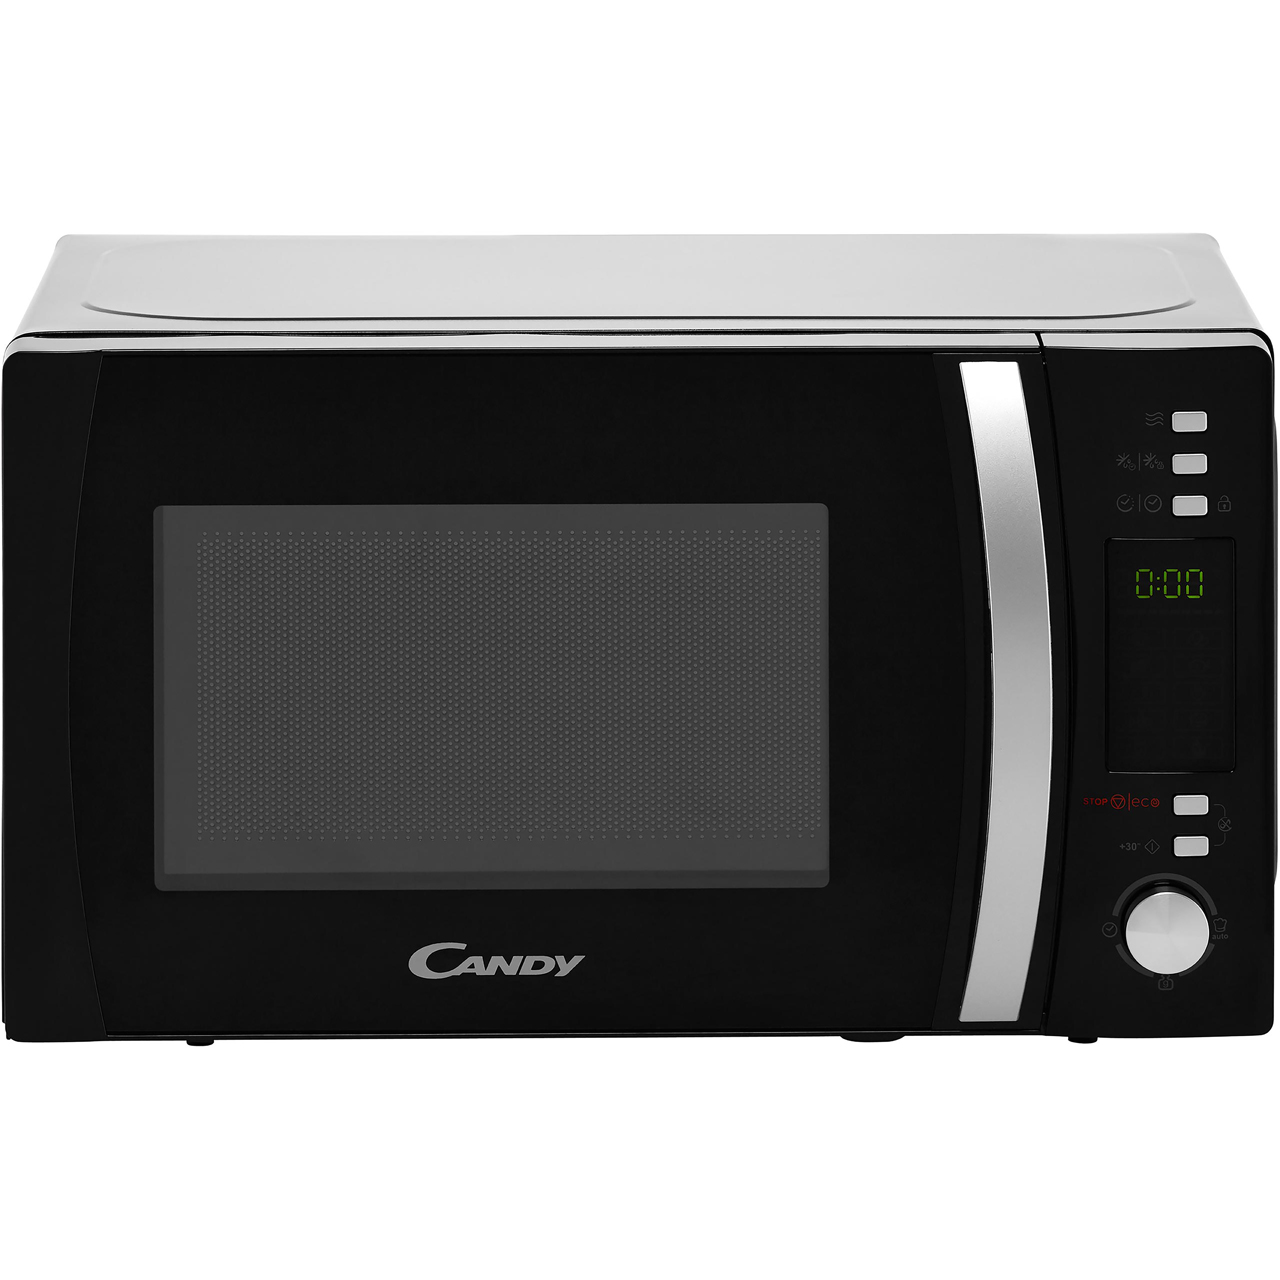 Candy Microwave Oven Review: Candy Microwave